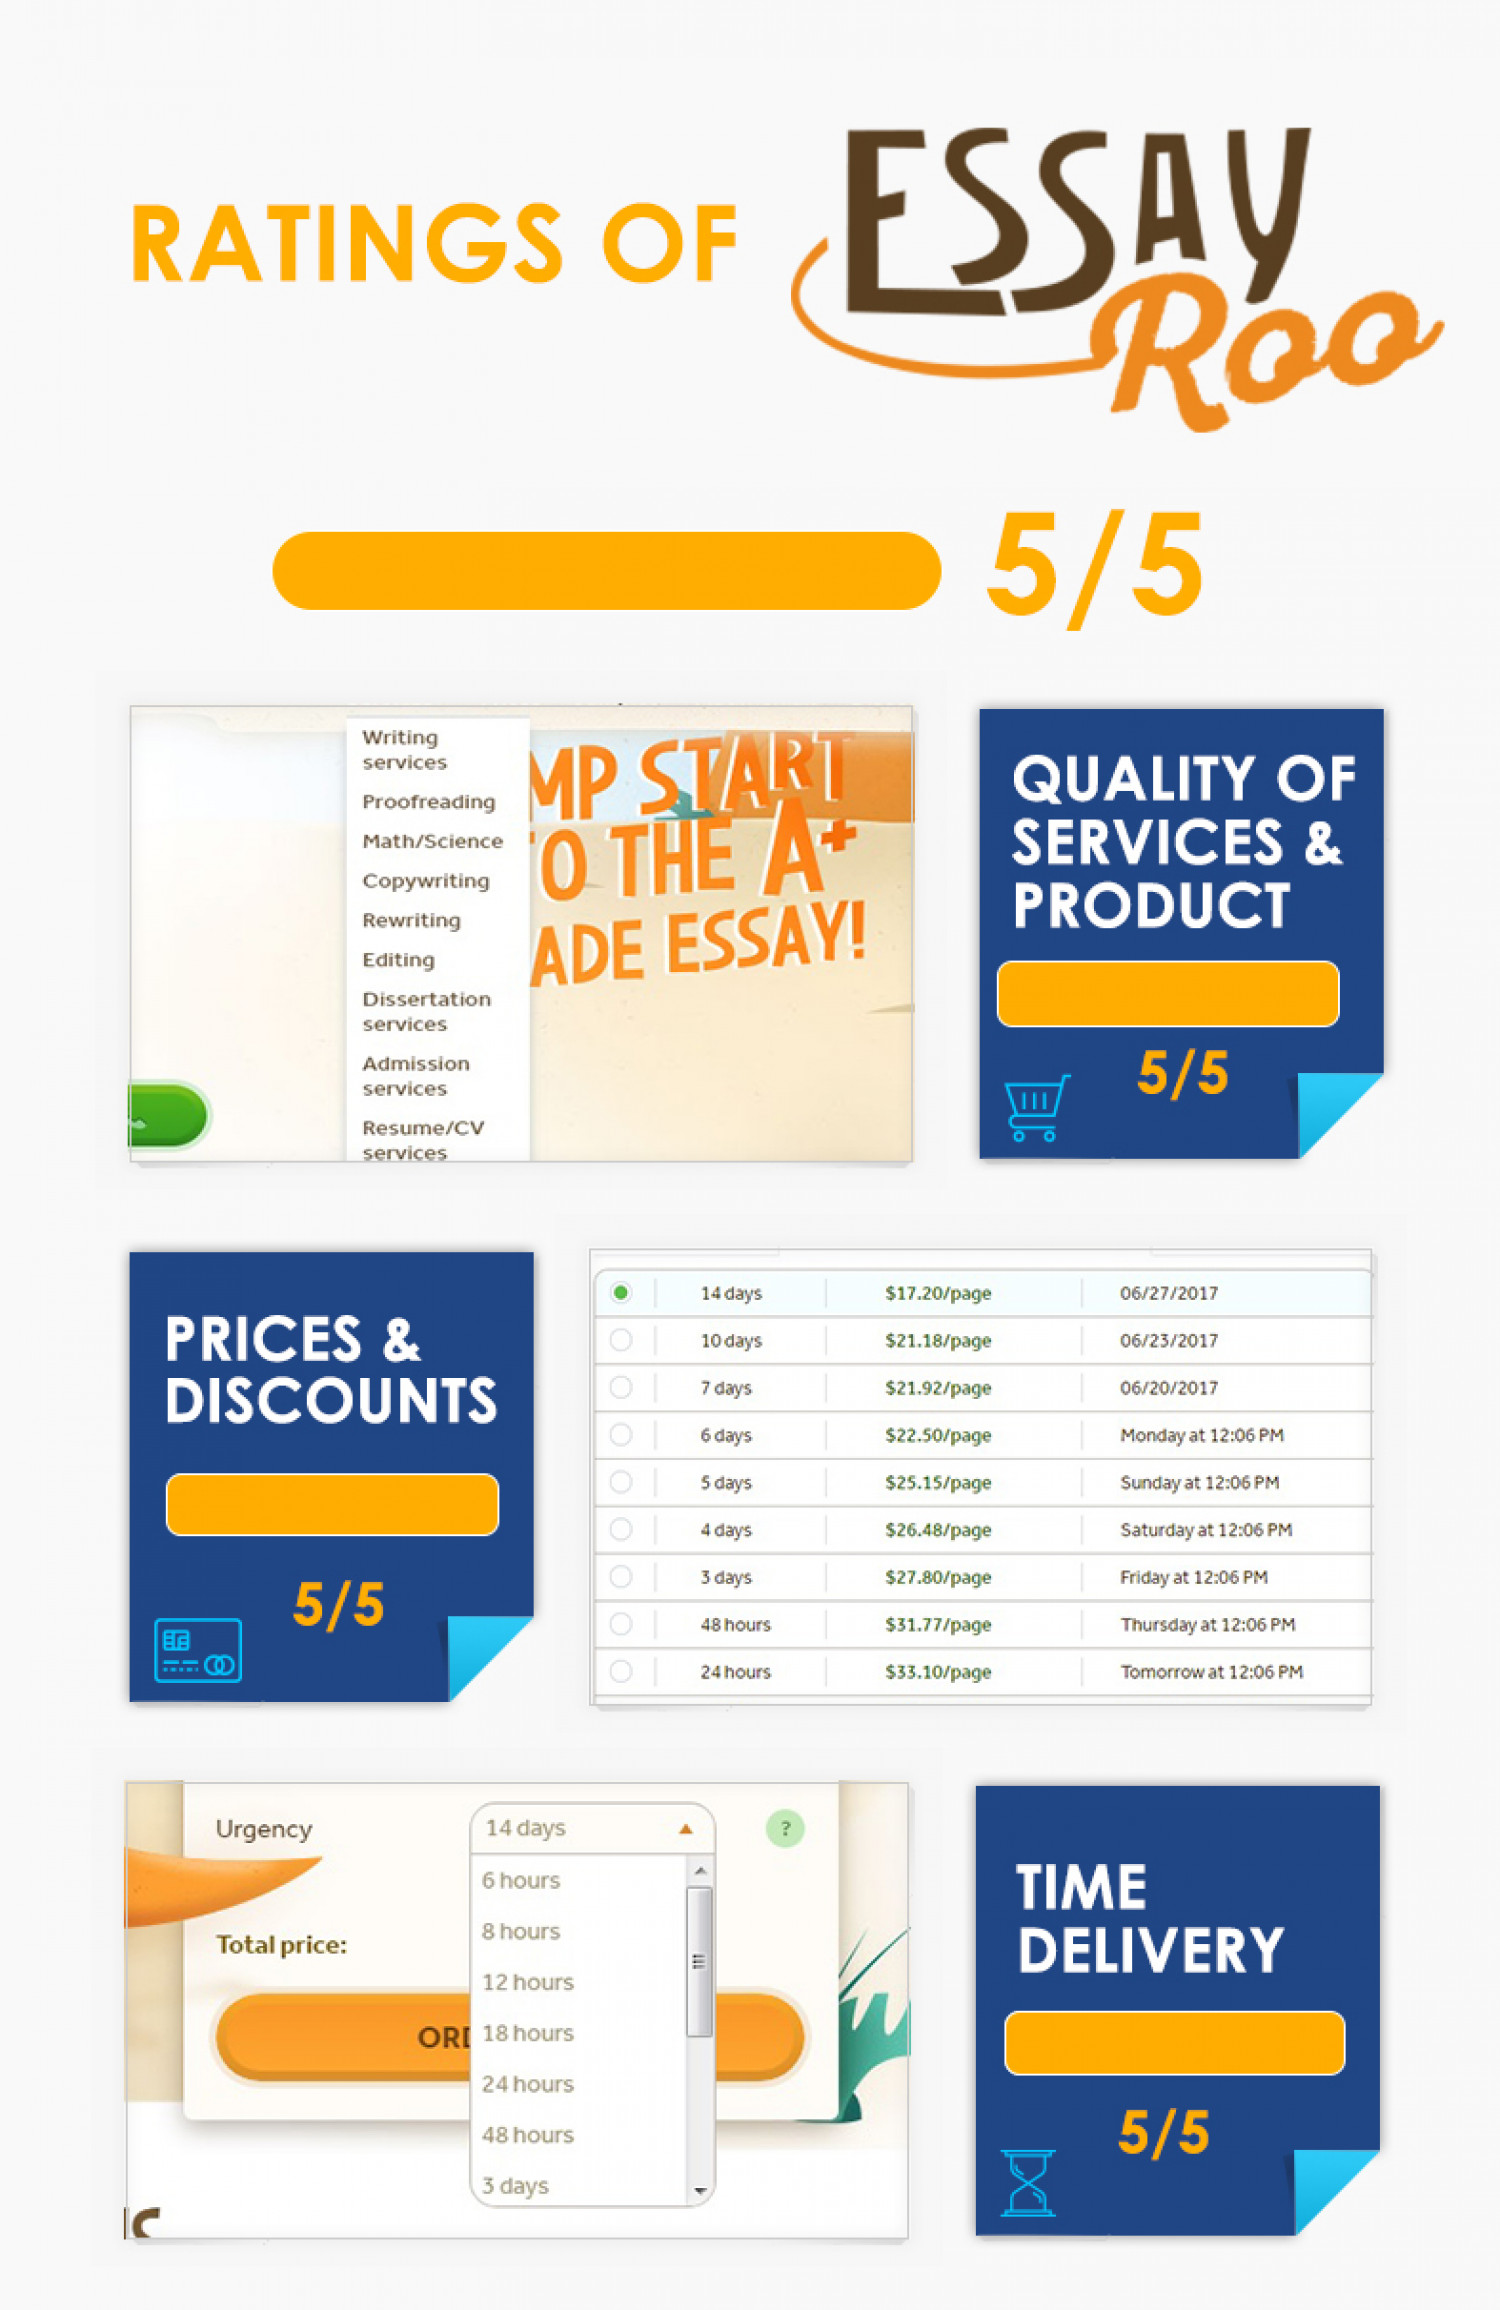 Fresh infographic about fresh writing service Essayroo from Paper Writing Reviews website! Infographic